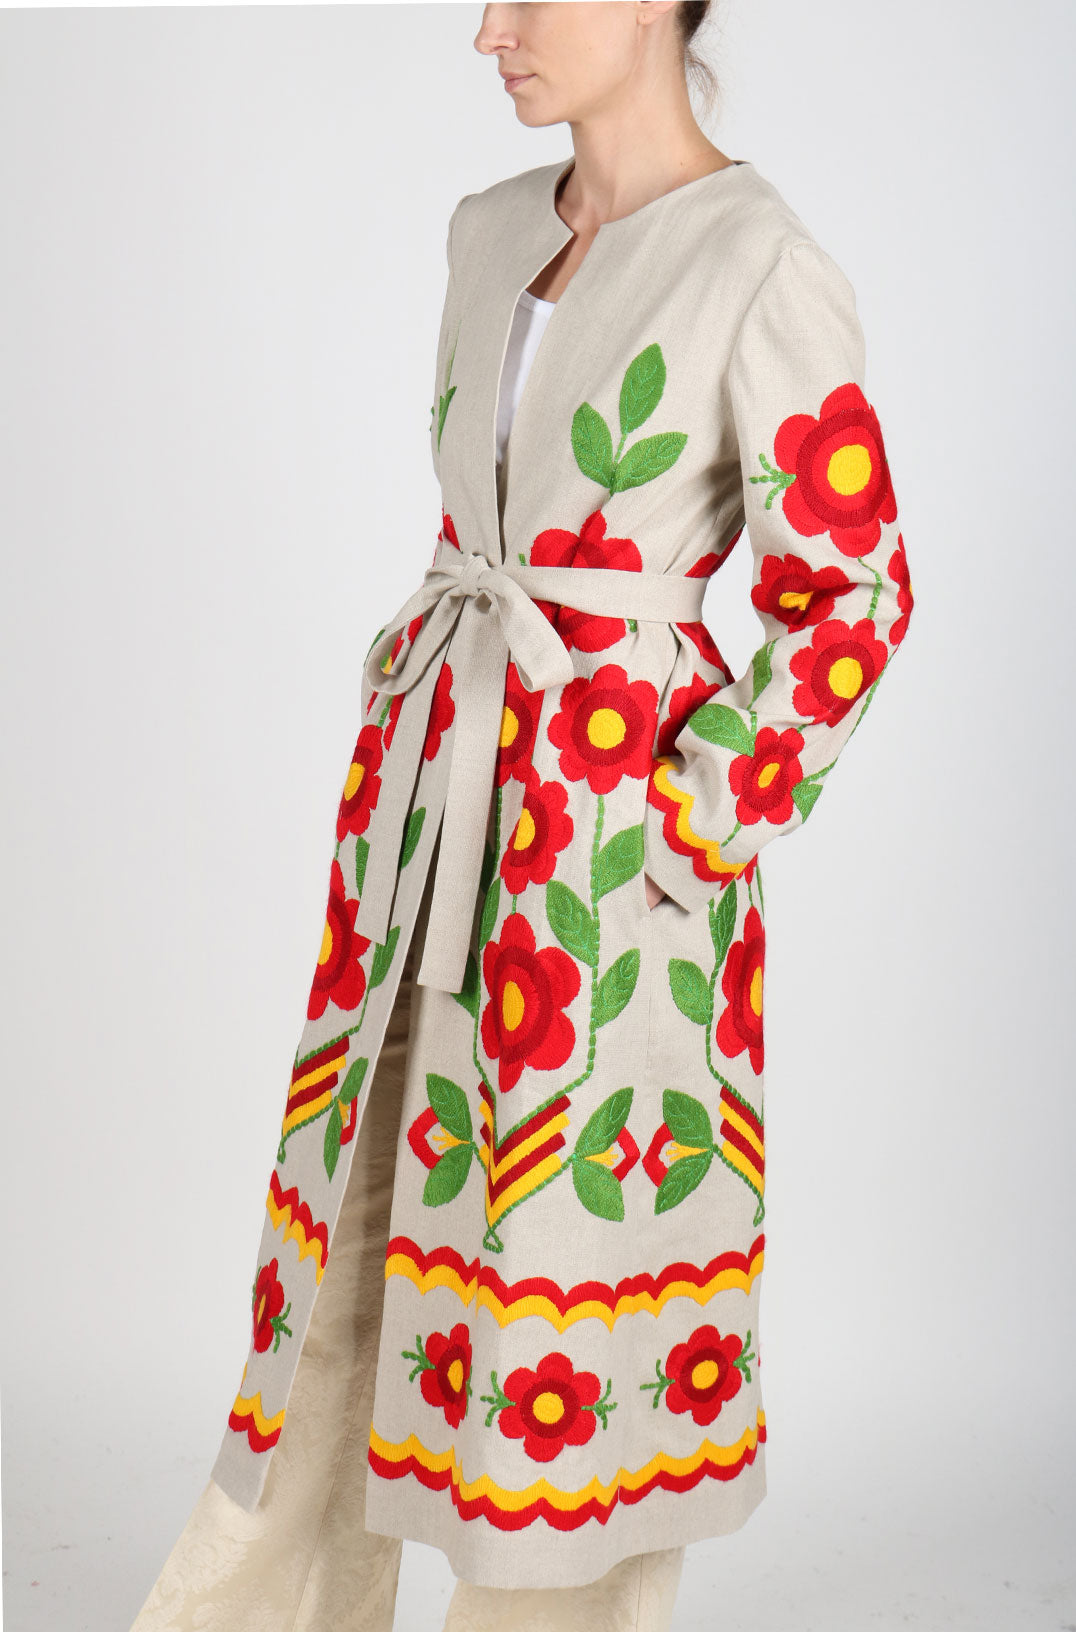 Fanm Mon Vyshyvanka Linen Jacket HAND Embroidered MULTI COLOR Floral Jacket IN STOCK